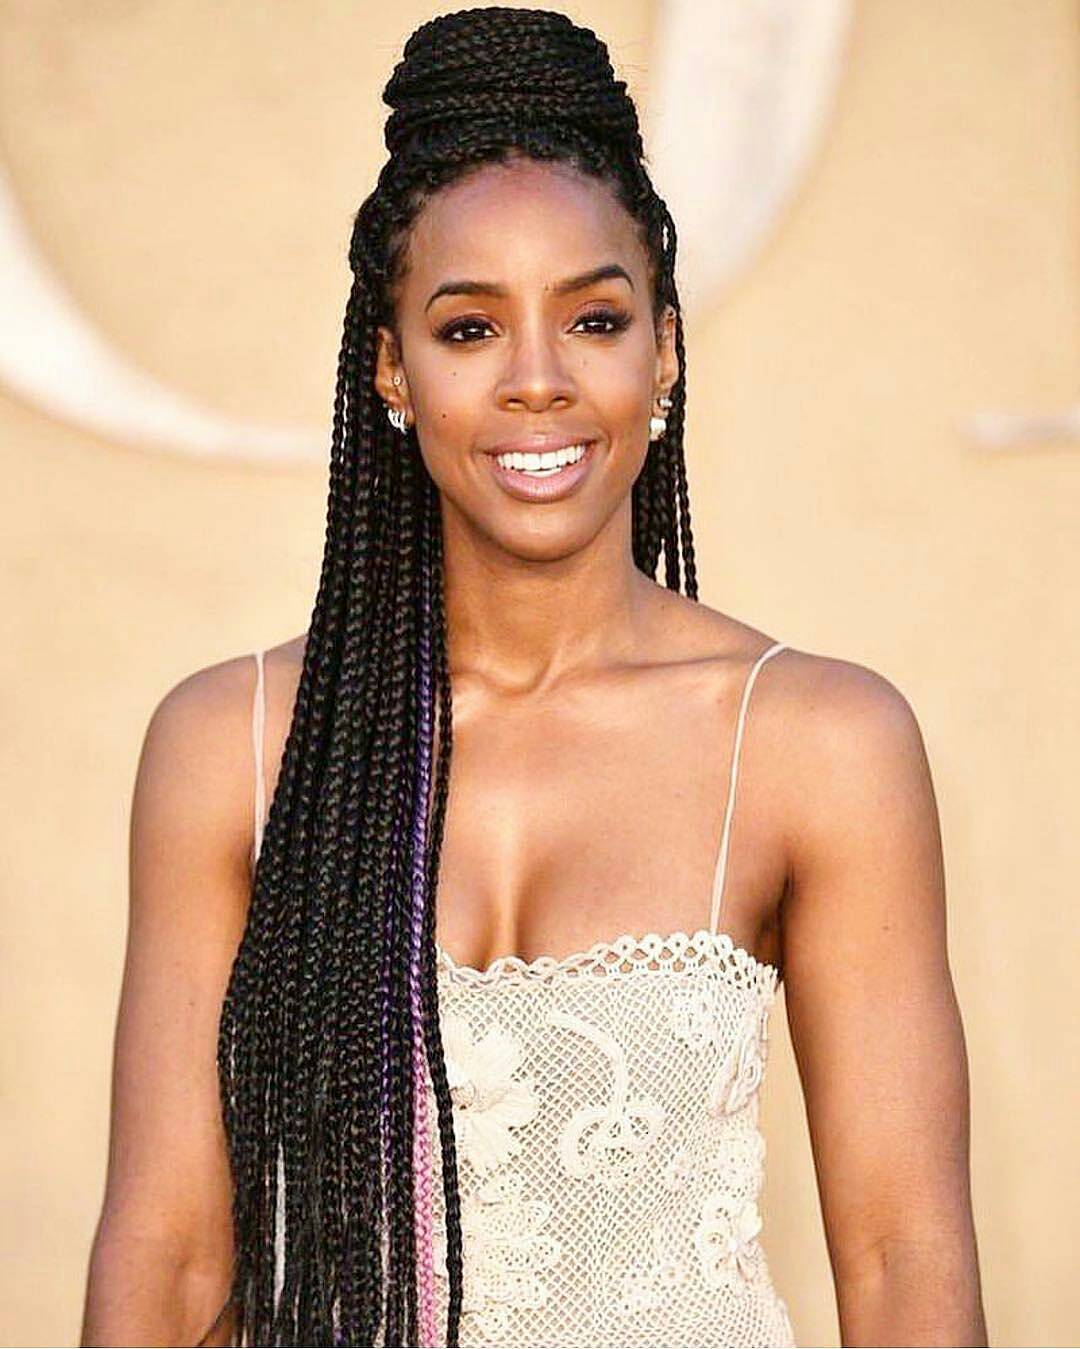 All You Can Do with Waist-length braids